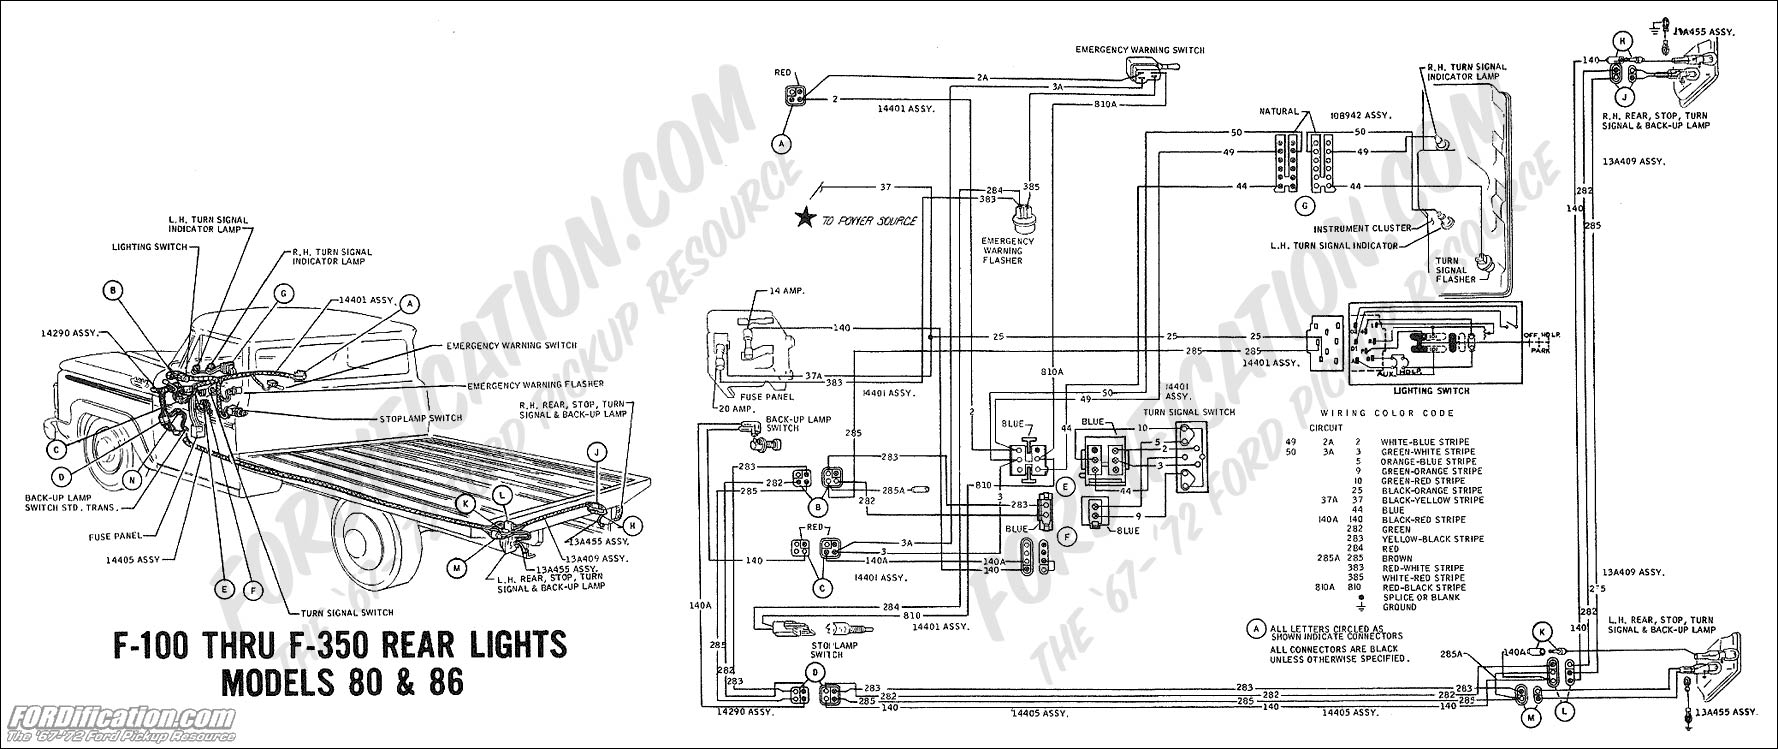 ford truck technical drawings and schematics section h wiring rh  fordification com 1986 Ford F-150 Engine Diagram Ford Starter Solenoid Wiring  Diagram